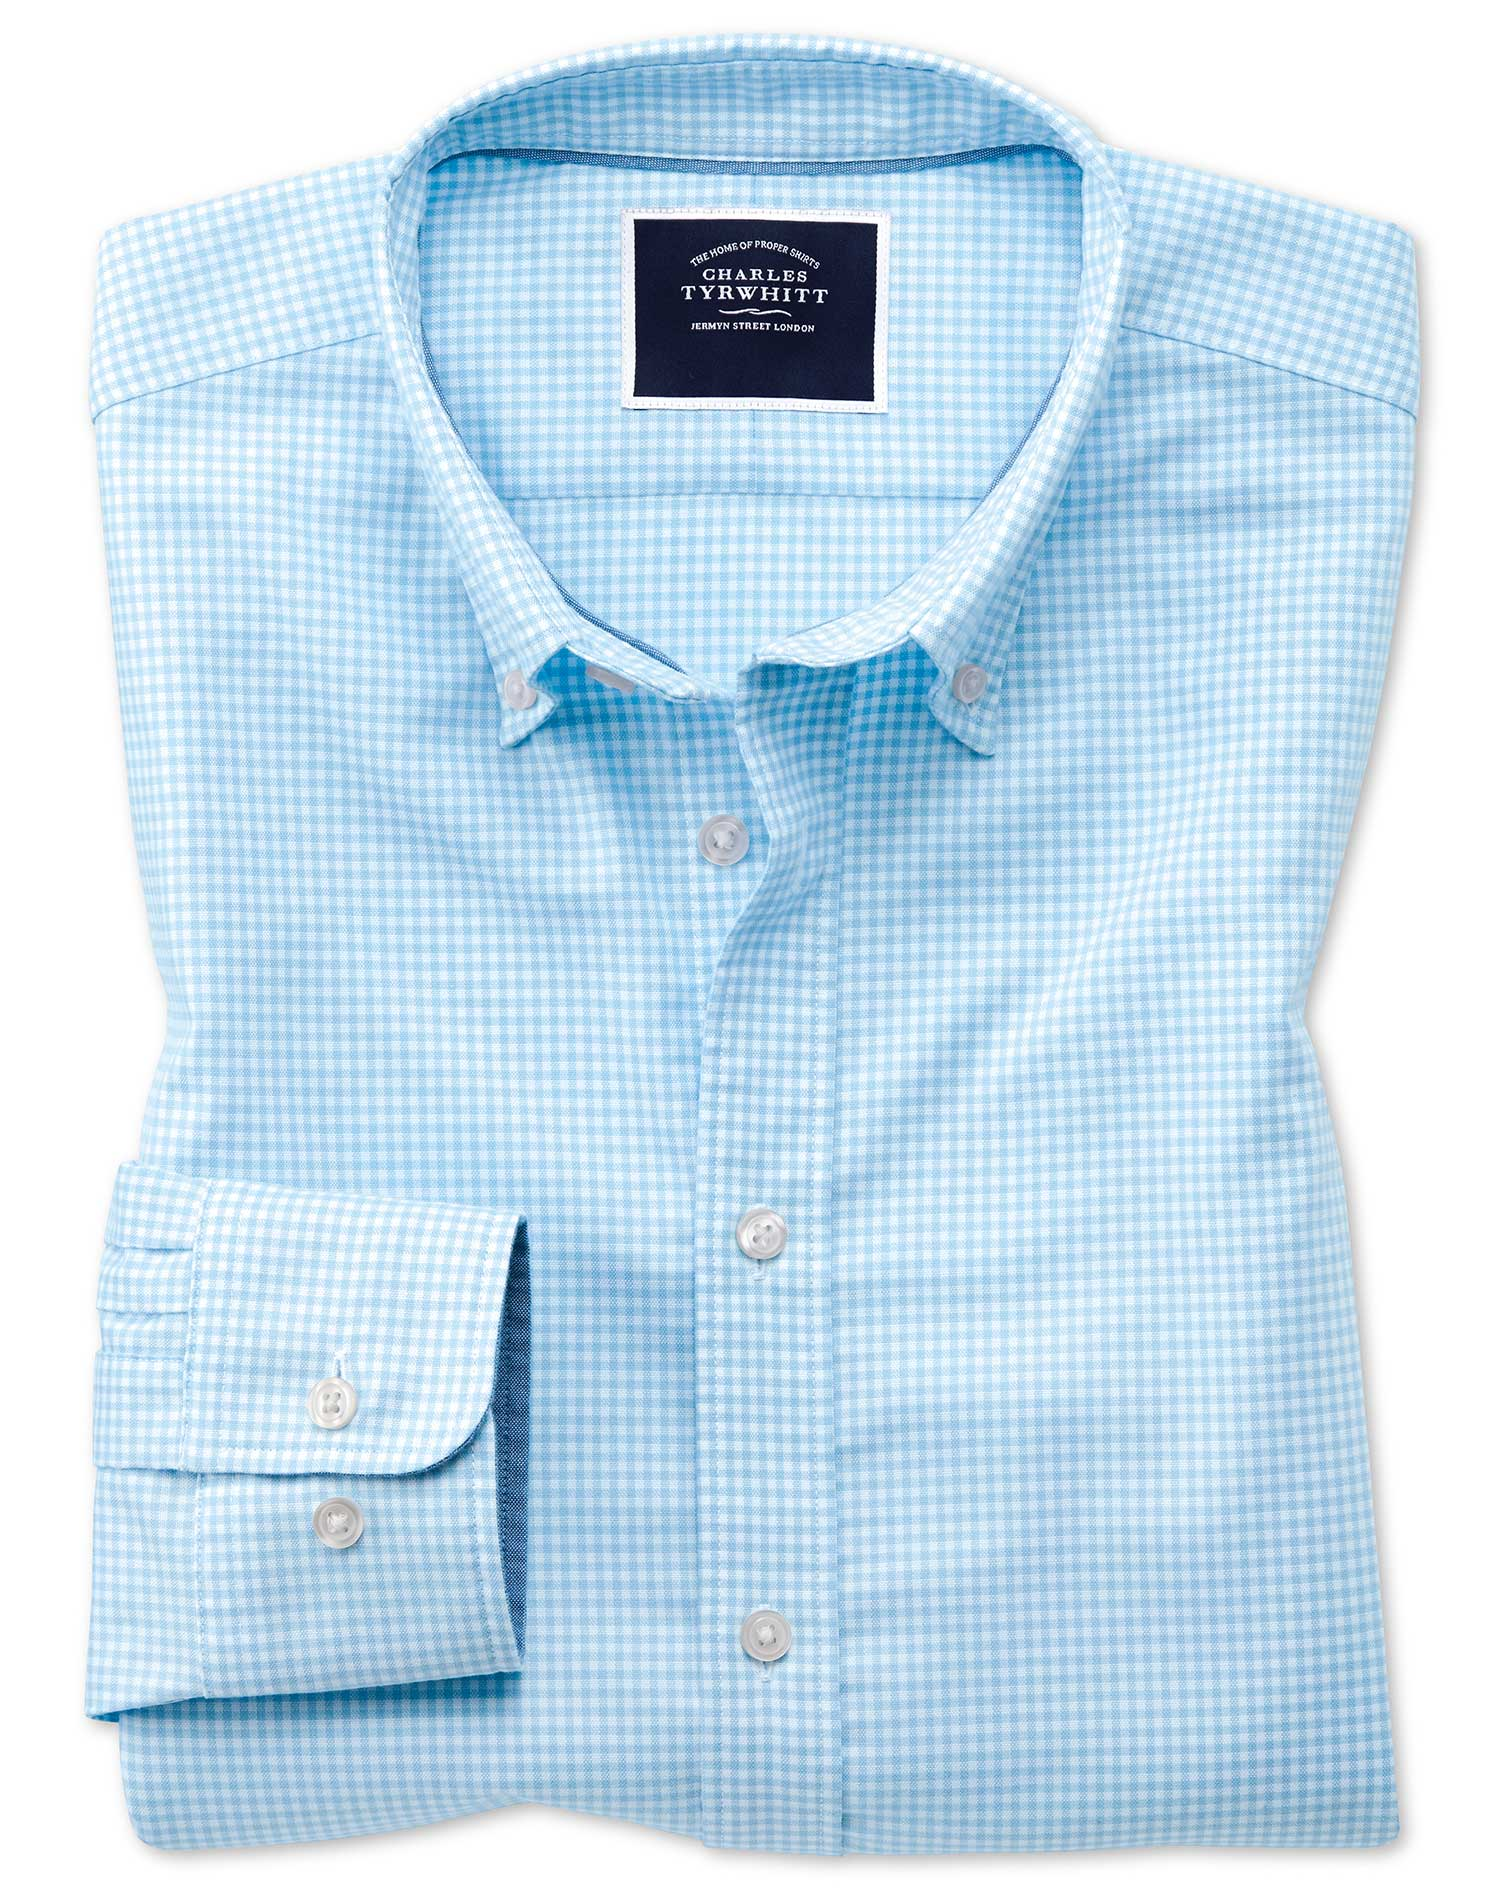 Extra Slim Fit Sky Blue Gingham Soft Washed Non-Iron Stretch Cotton Shirt Single Cuff Size Medium by